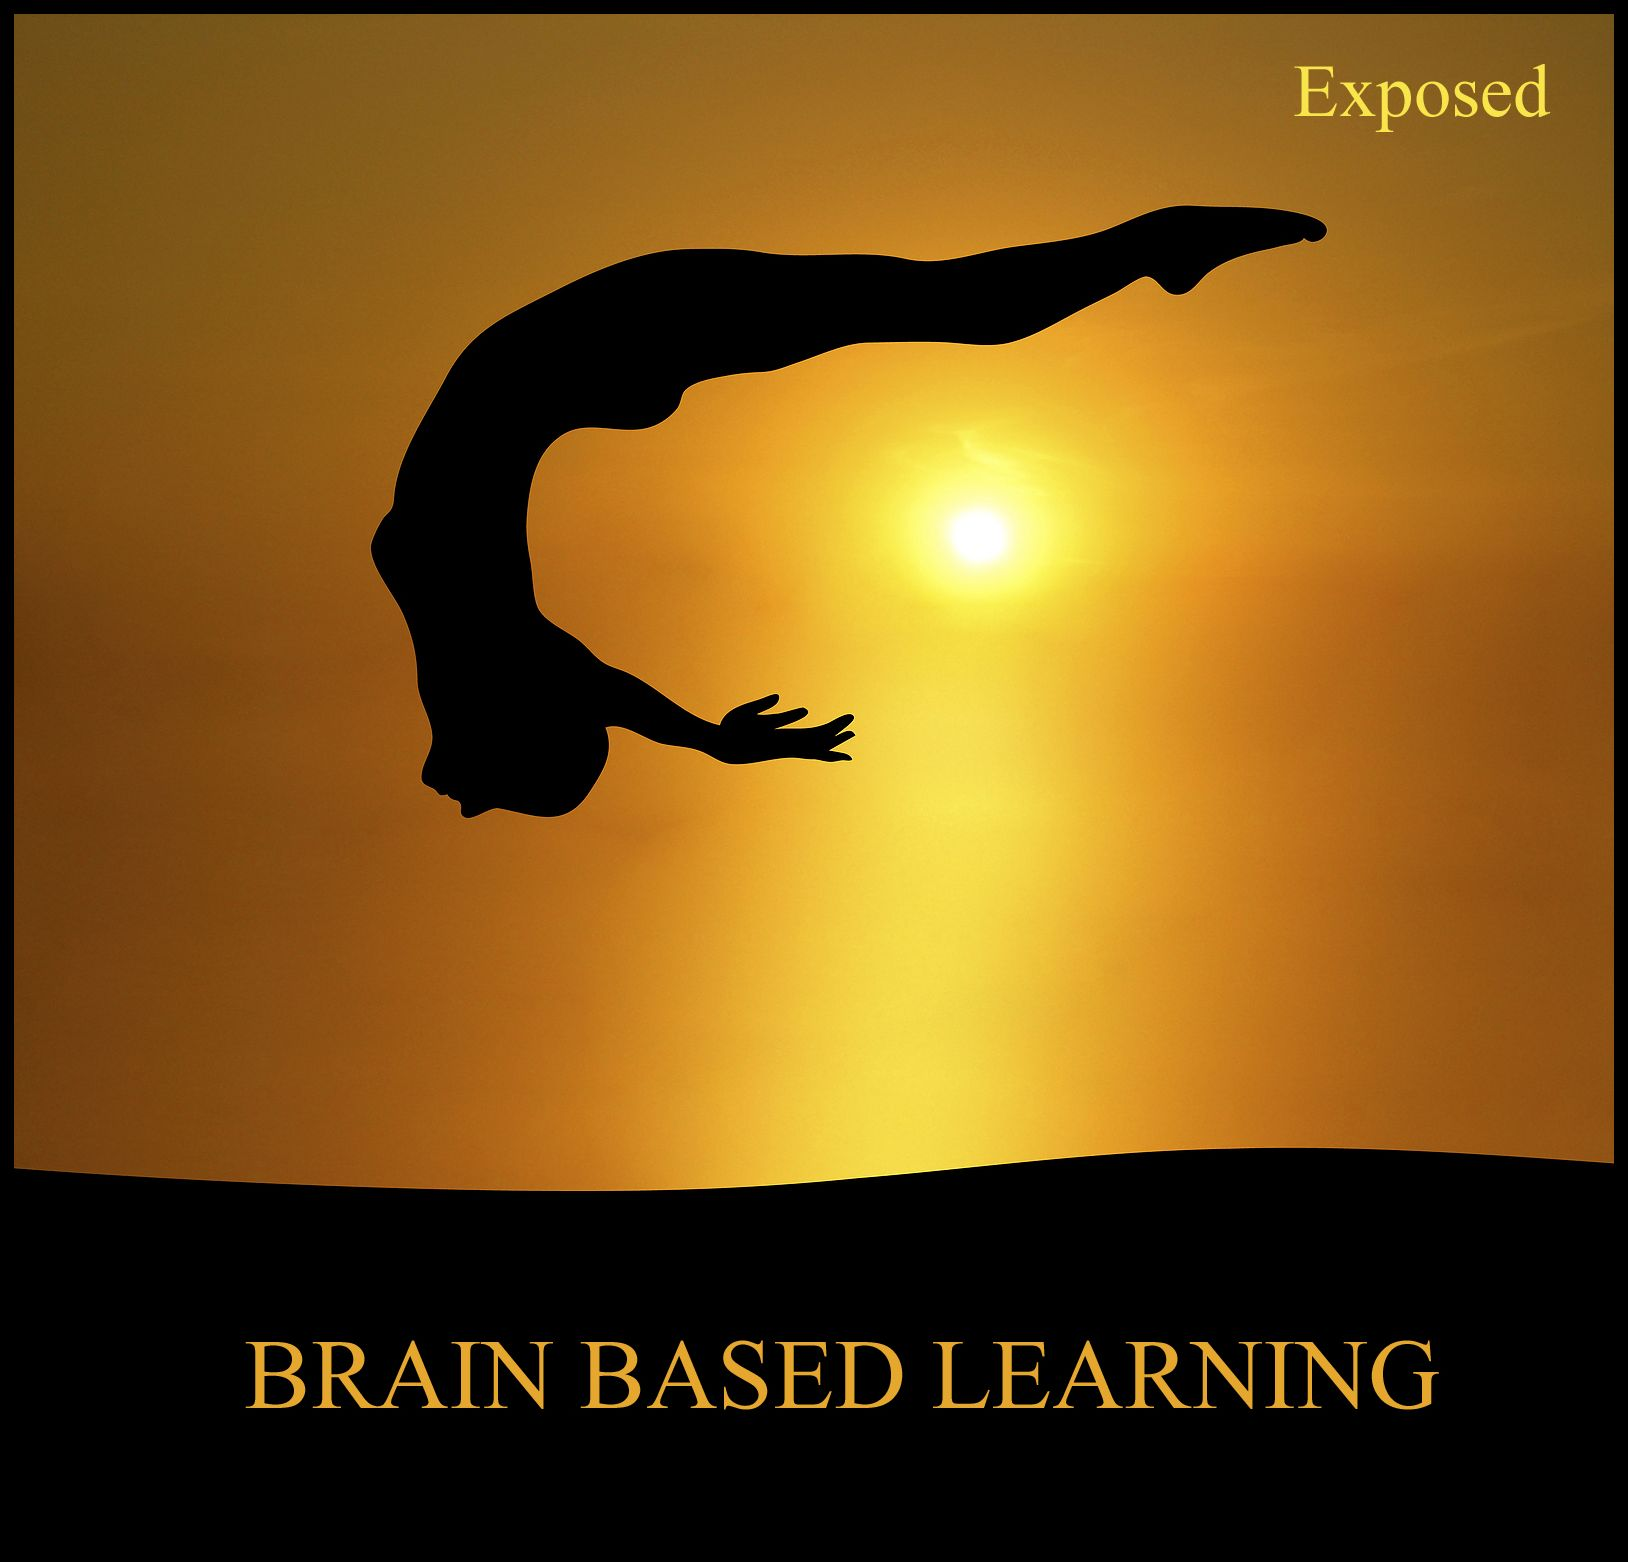 2-brain-based-learning.jpg